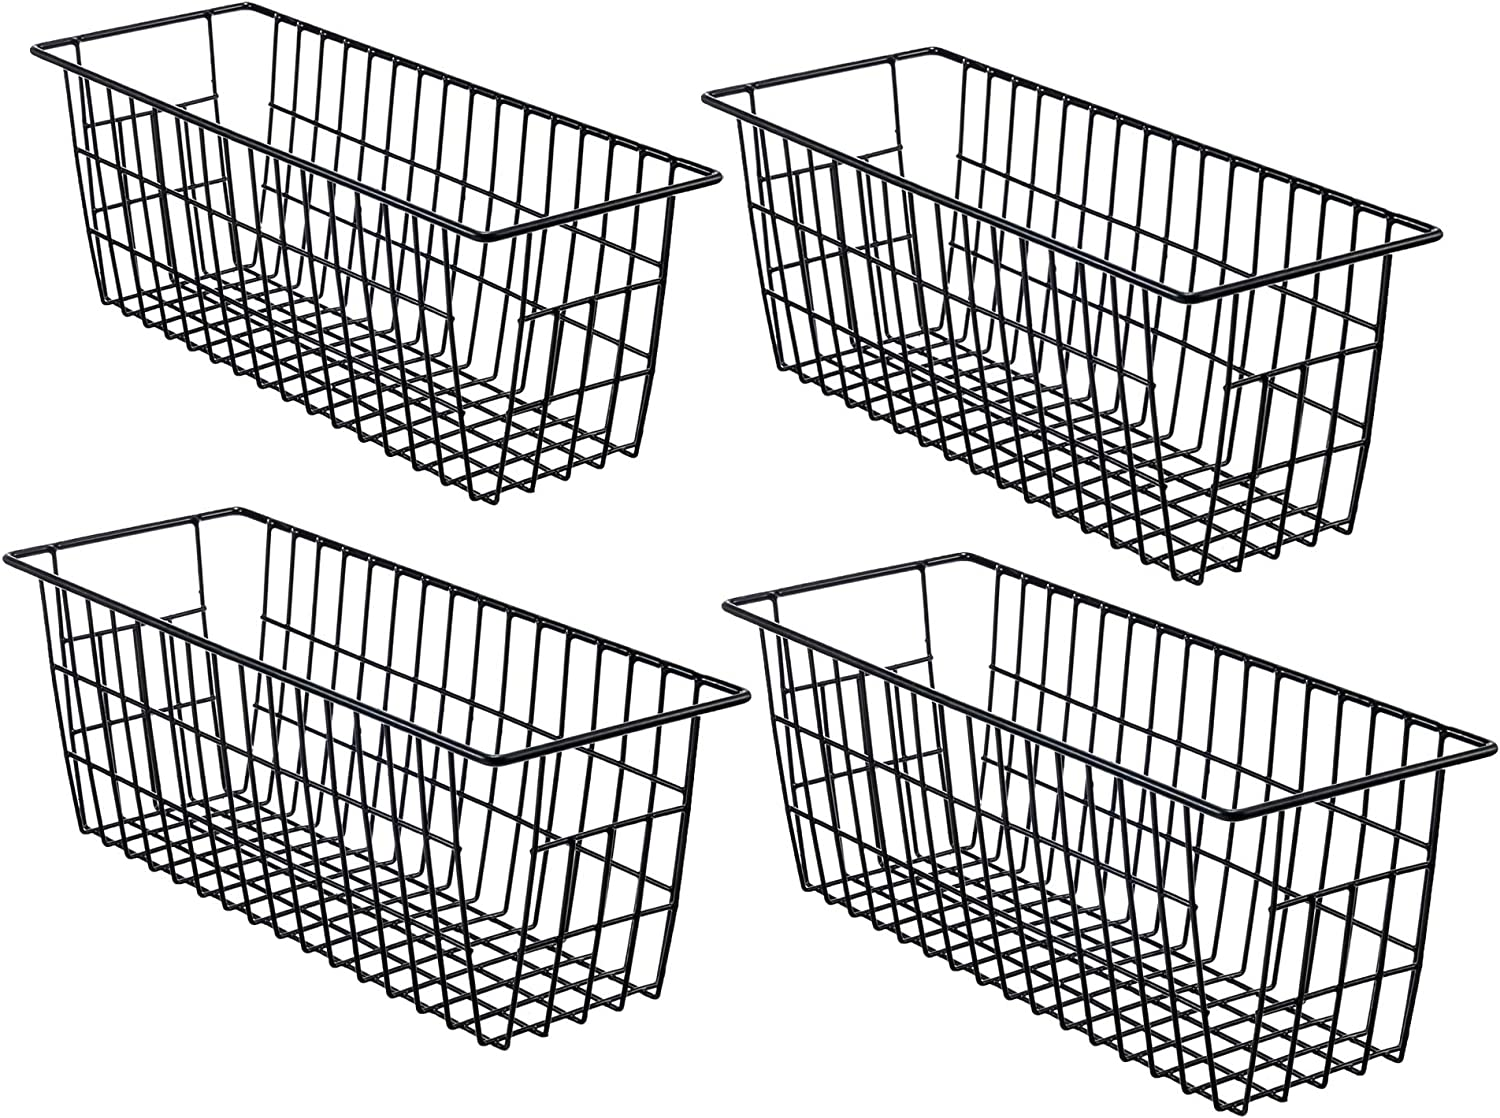 iPEGTOP Toilet Paper Holder Narrow Metal Wire Food Storage Organizer Bin Basket with Handles for Kitchen Cabinets, Pantry, Bathroom, Laundry Room, Closets, Garage, 4 Pack, Black